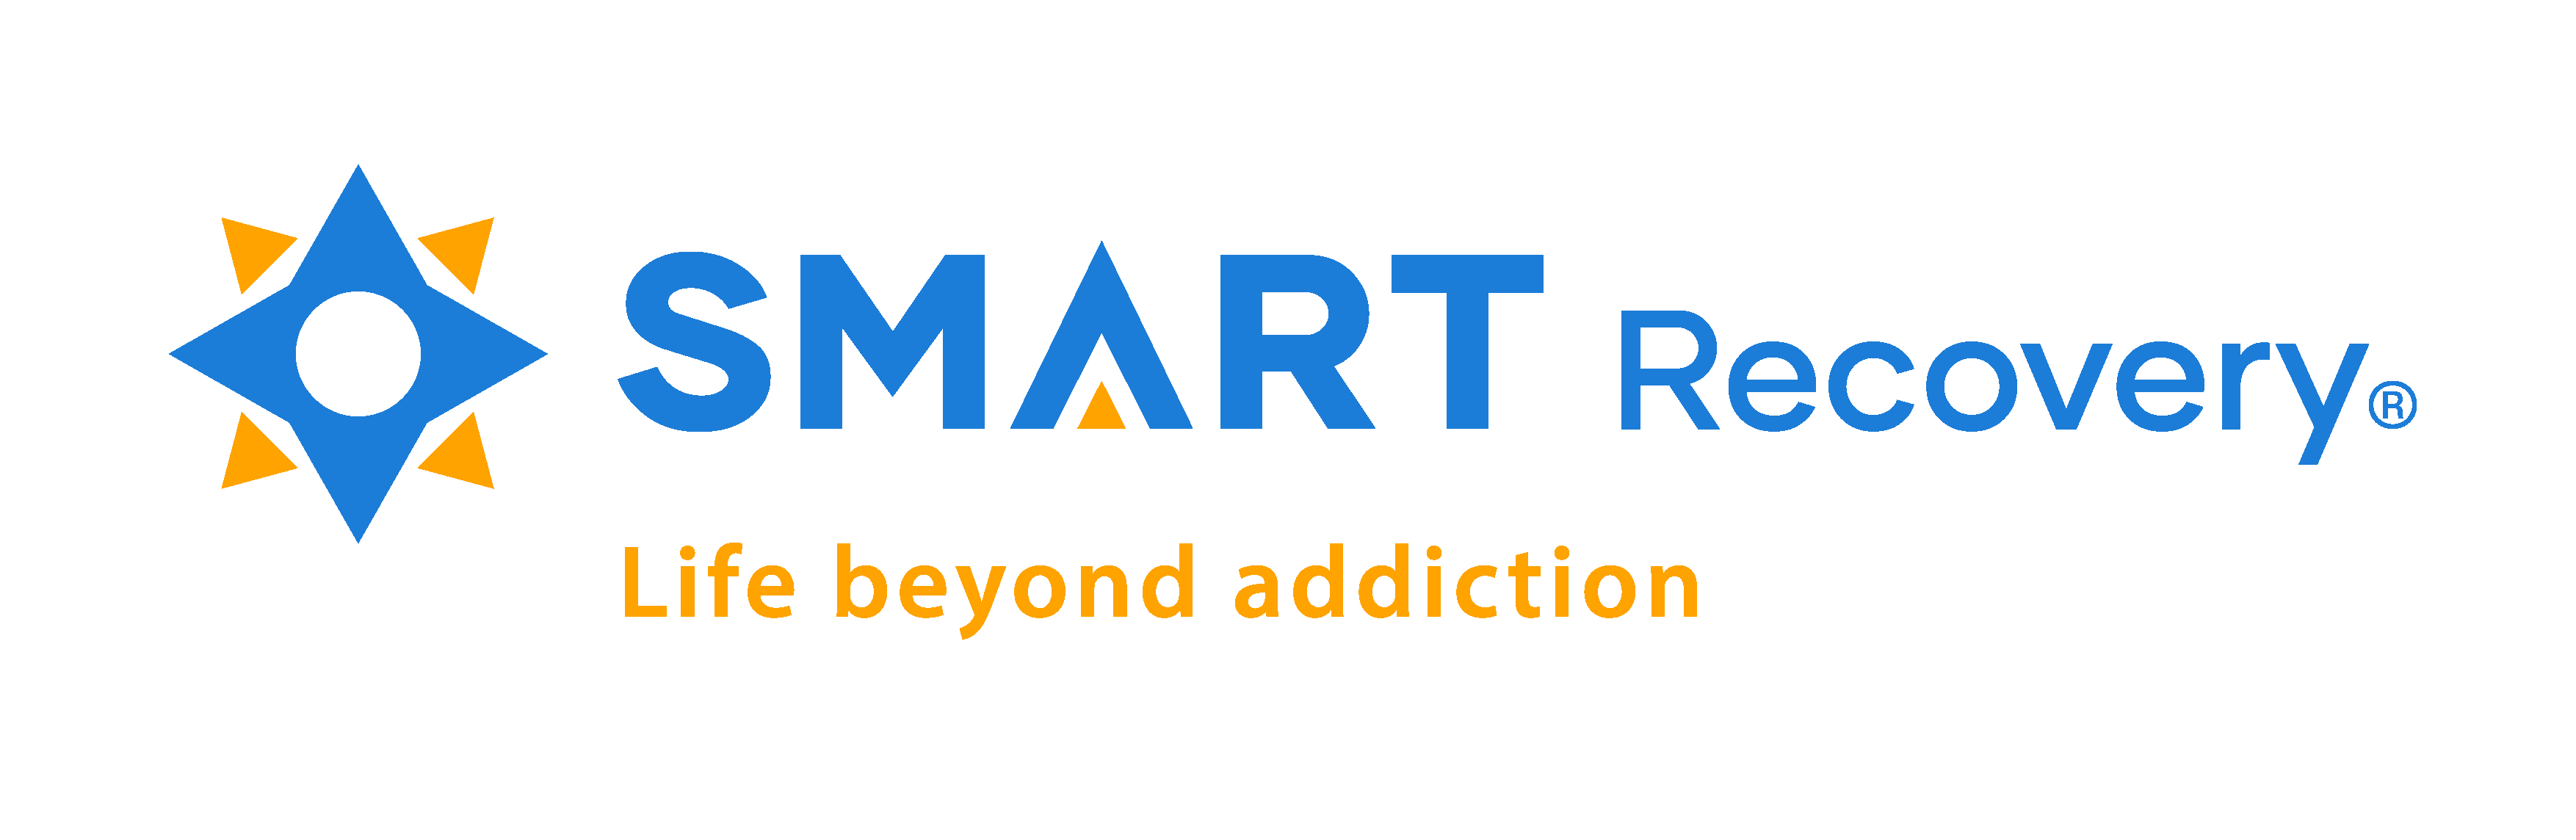 SMART Recovery Online Community